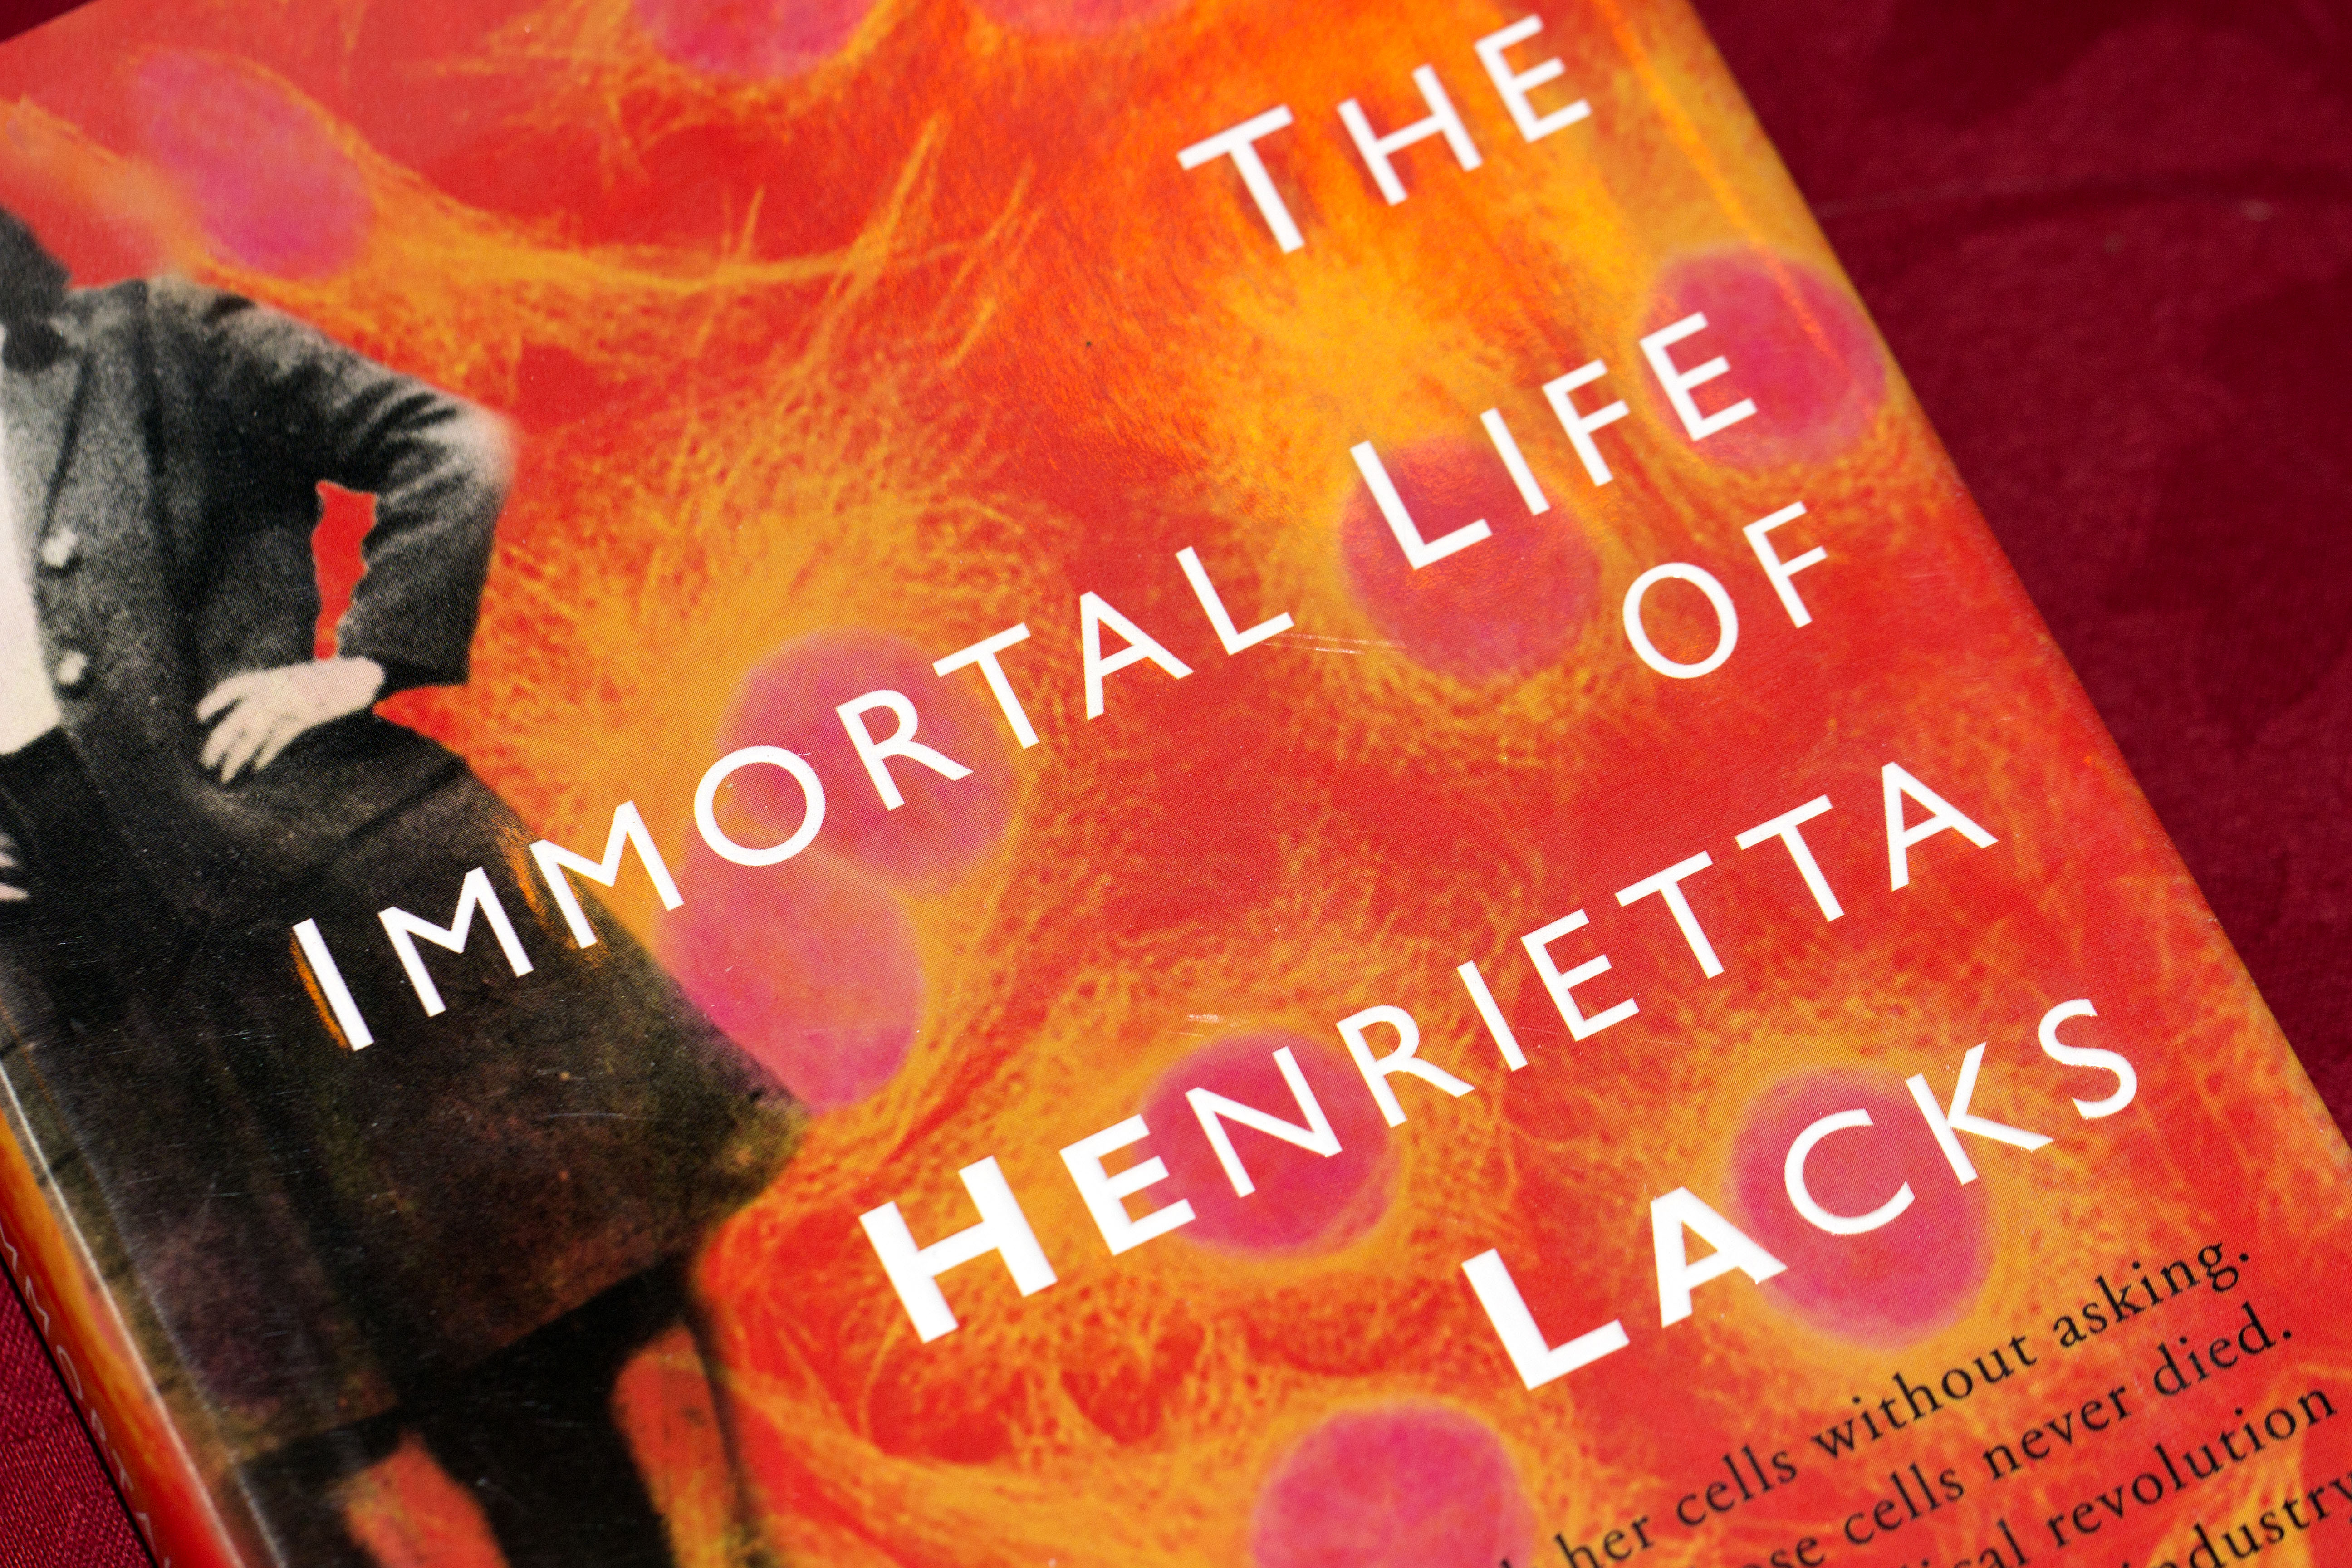 the theme of racism as portrayed in the immortal life of henrietta lacks by rebecca skloot The immortal life of henrietta lacks by rebecca skloot the immortal life of henrietta lacks what we're reading at literary corner cafe.